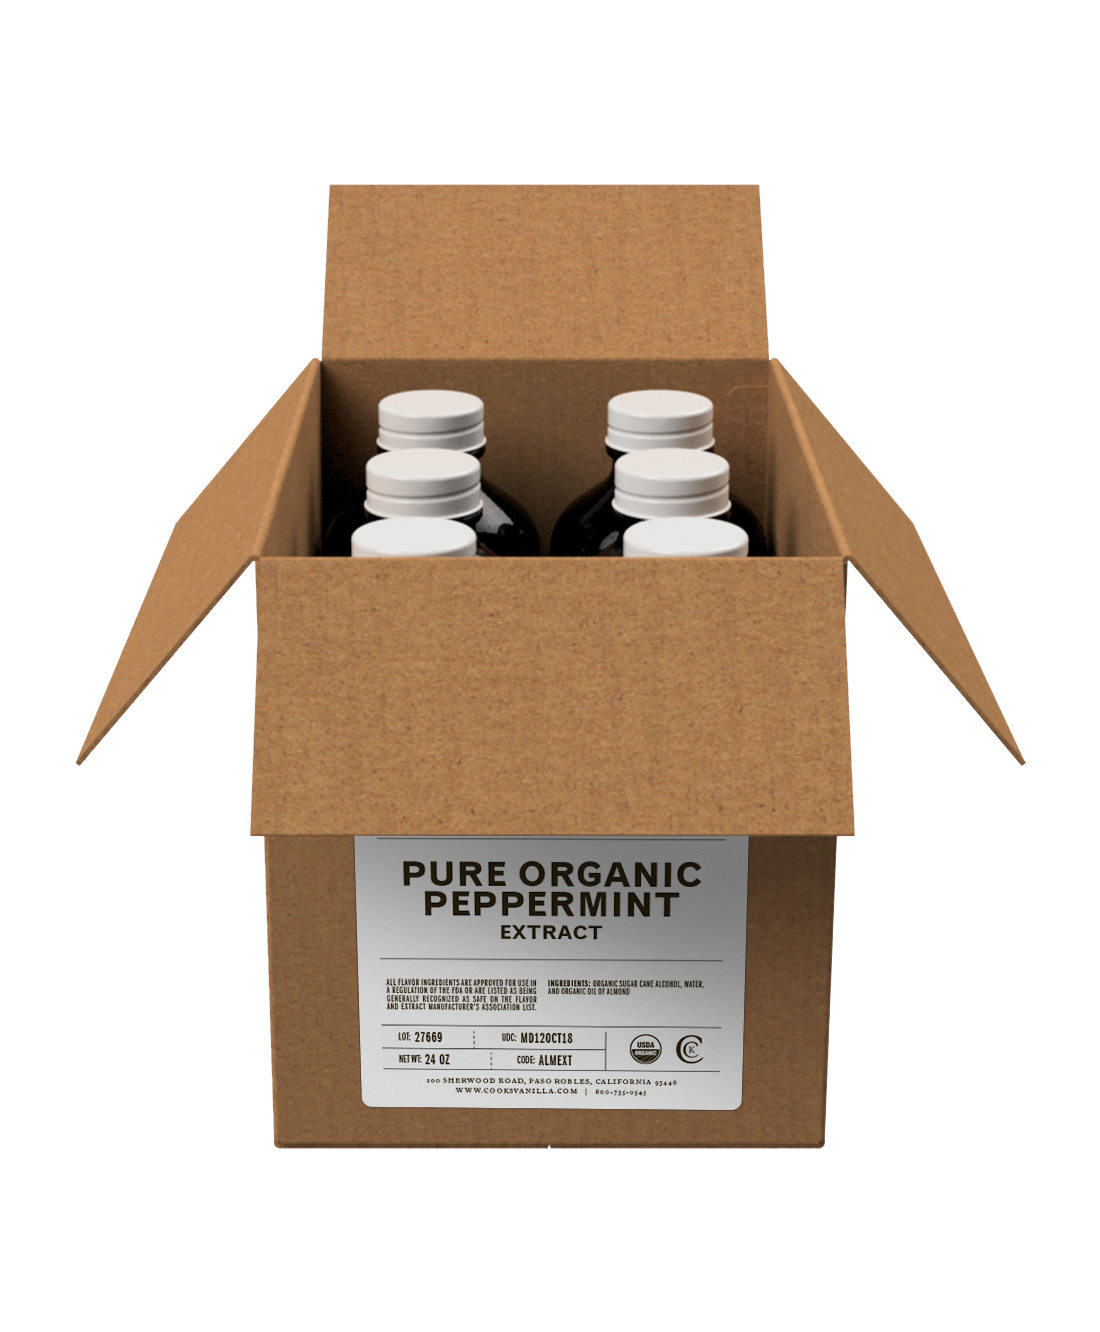 Flavoring | Organic Peppermint Extract (Pure) | Packs and Cases